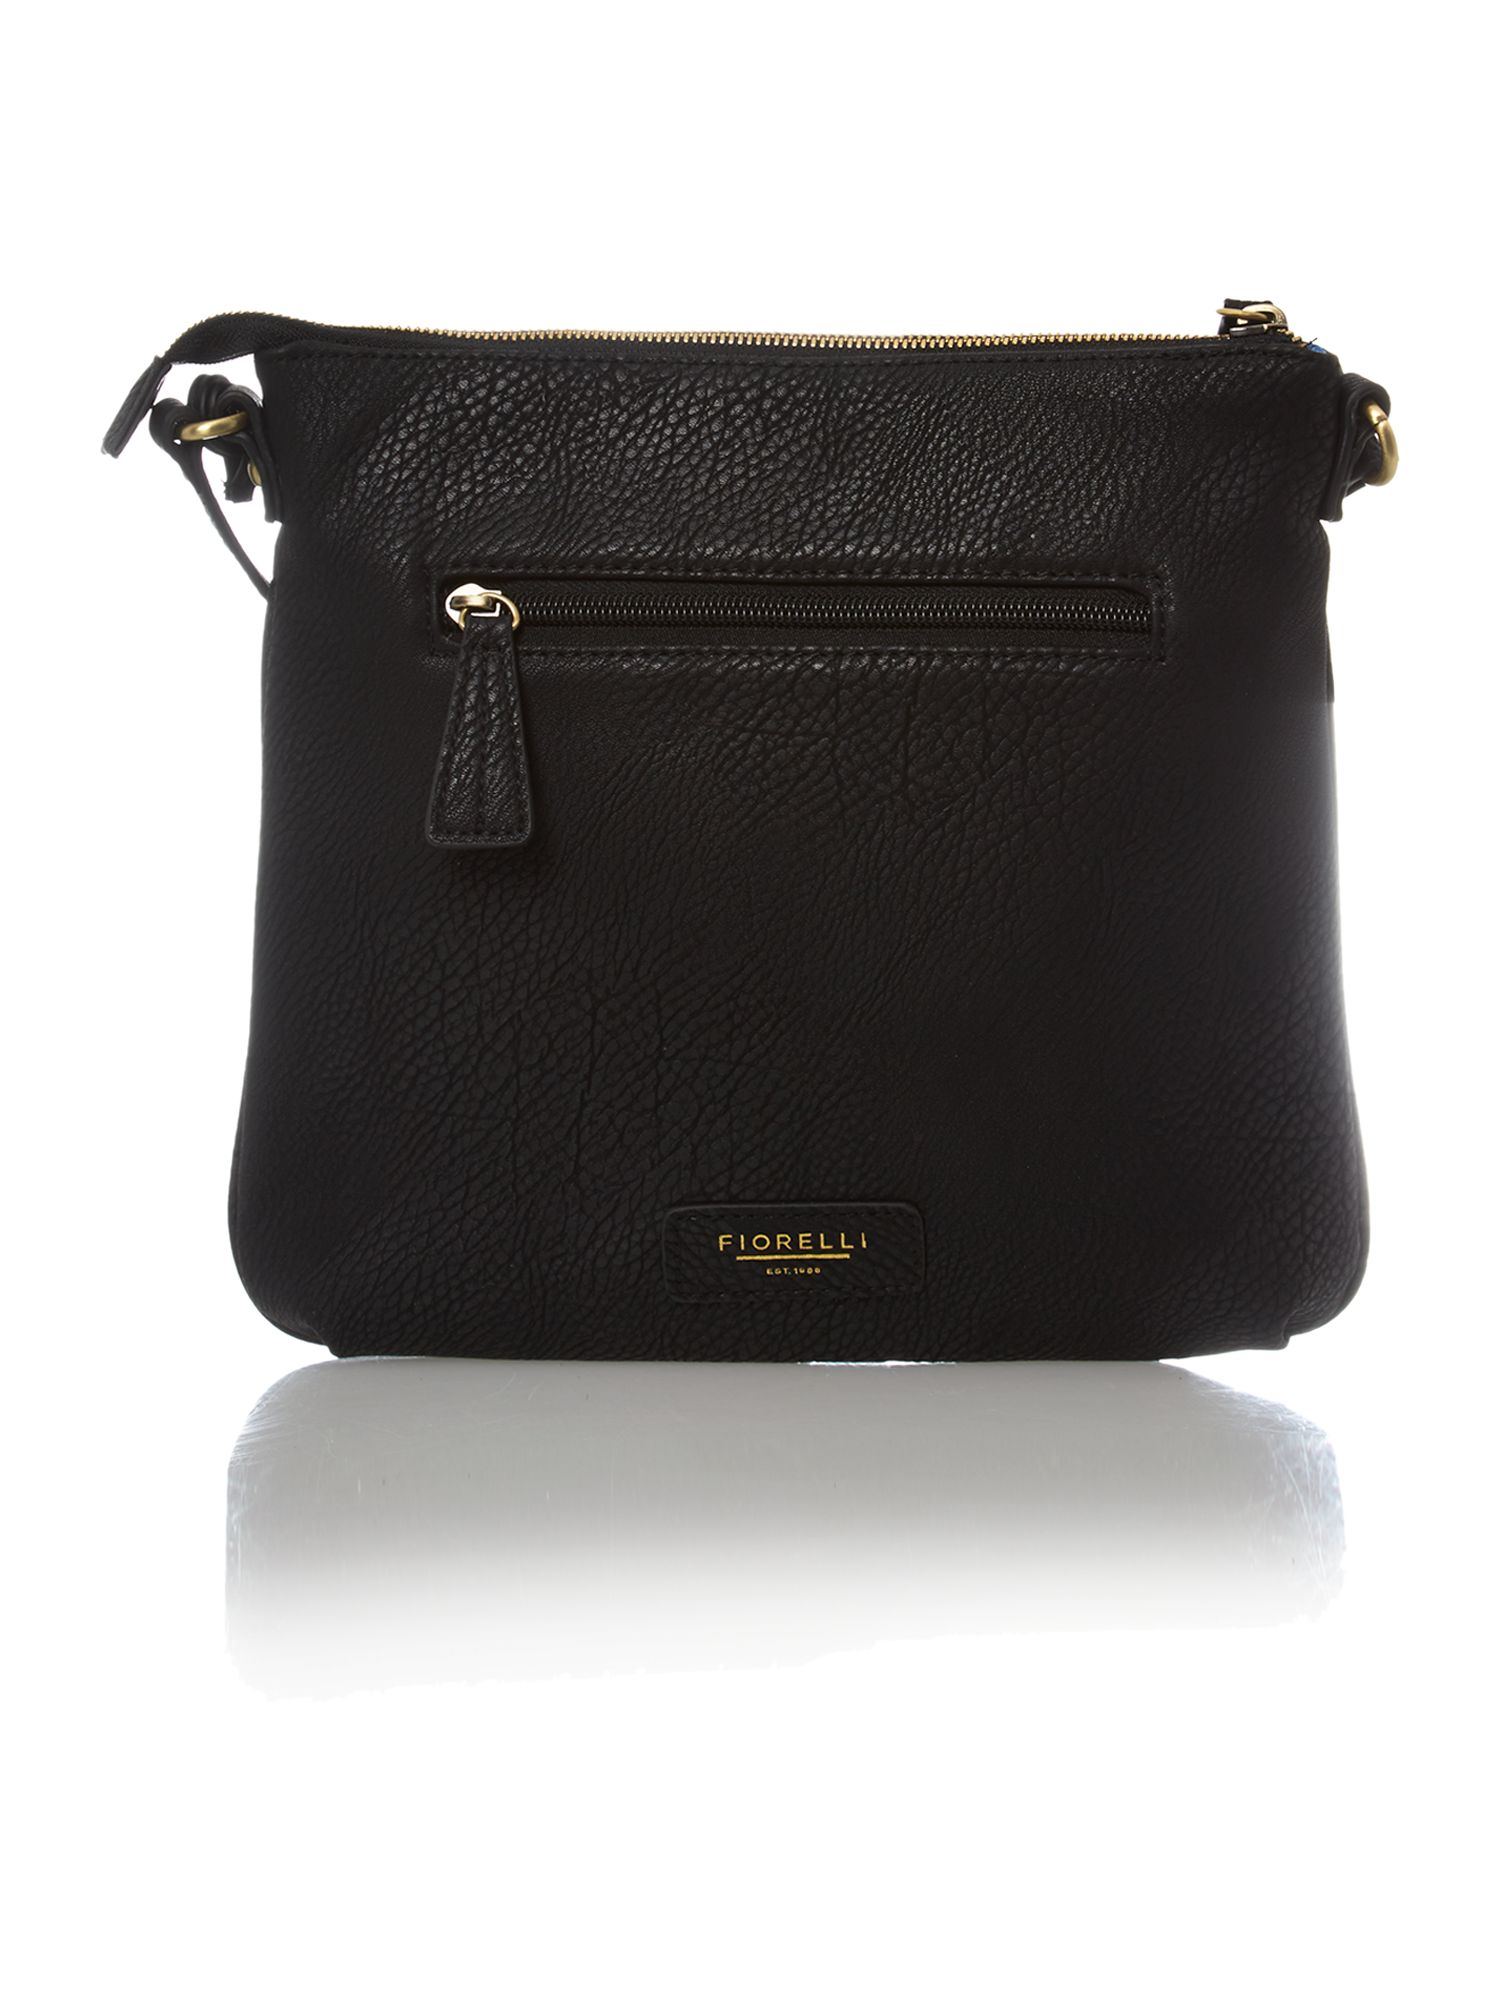 Ted black cross body bag